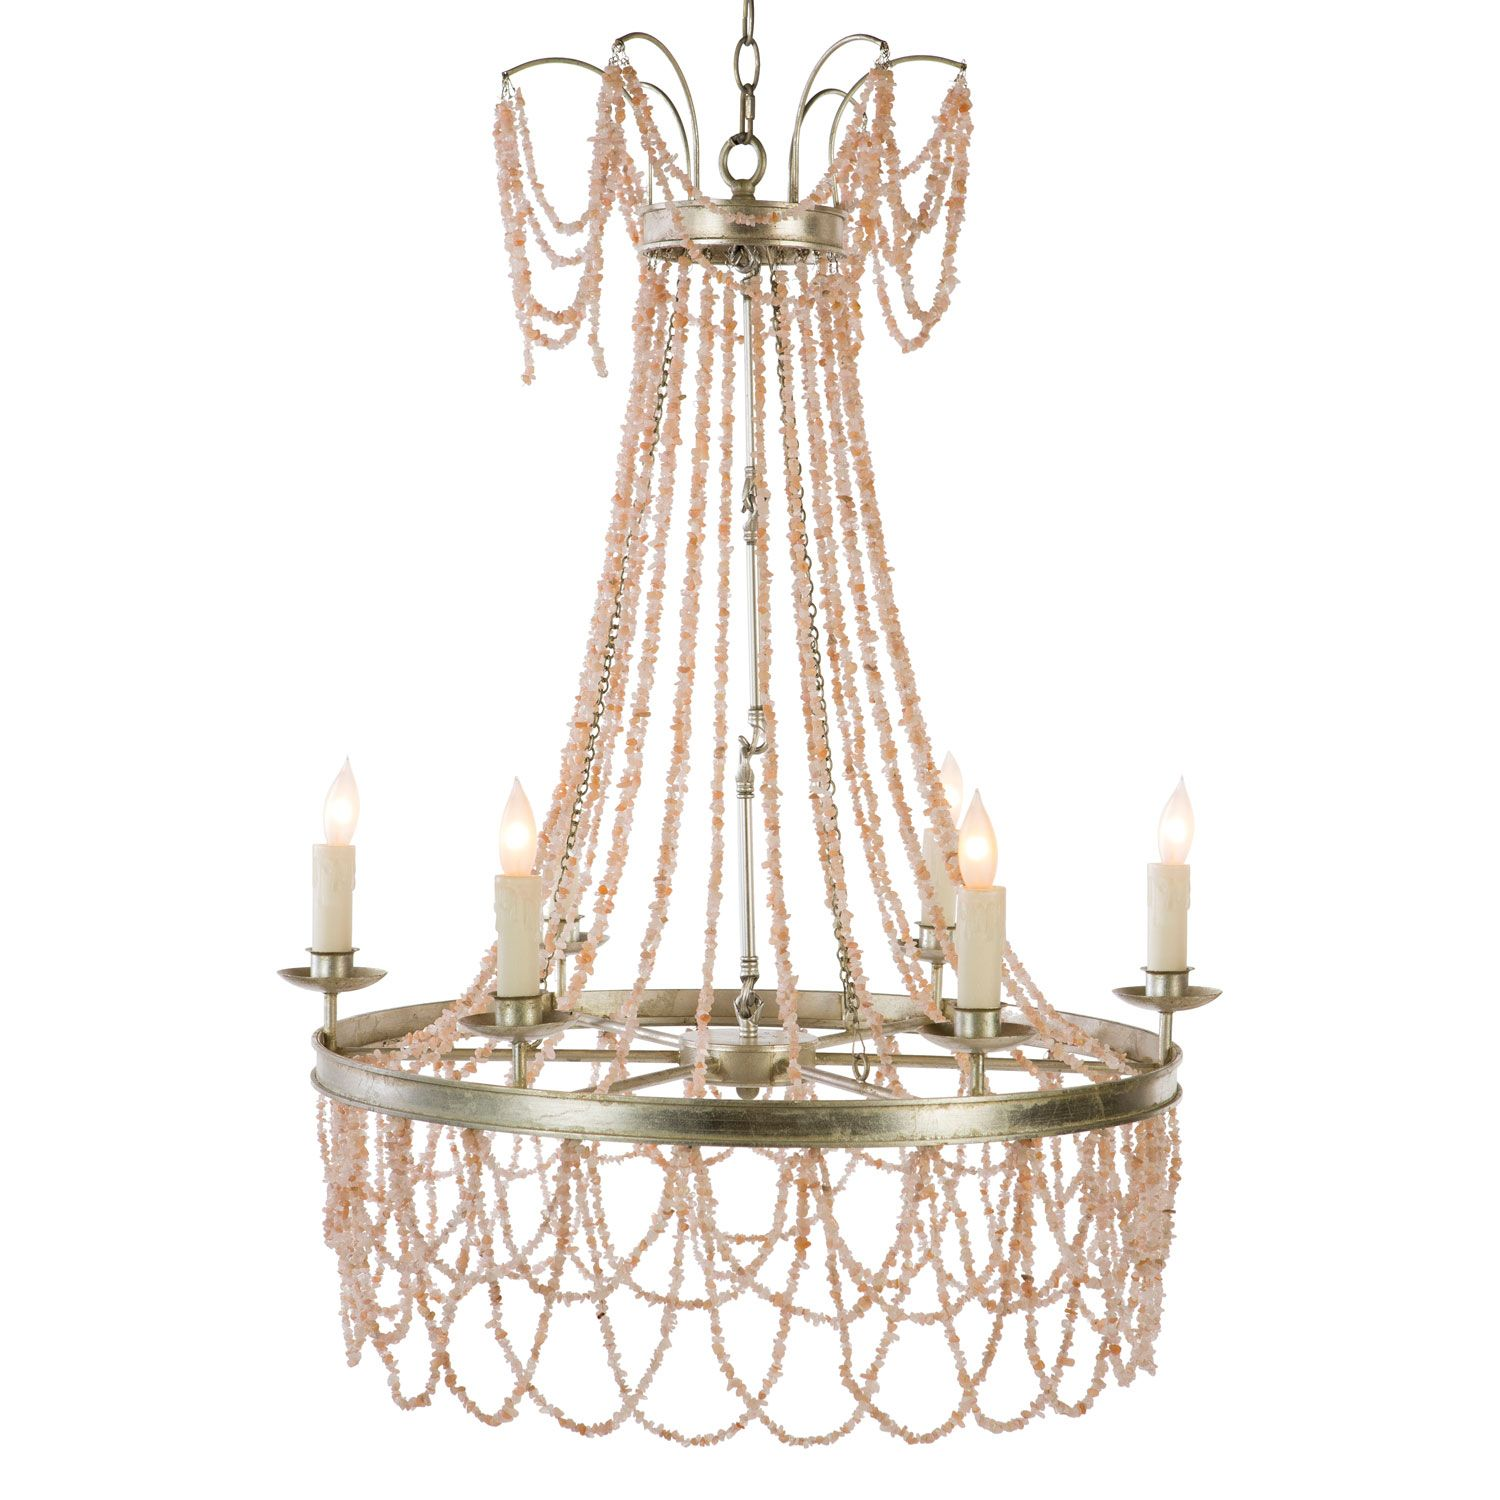 A Dramatic Addition To Foyers And Grand Living Spaces The Aidan Gray Amber Beaded Chandelier Offers A Luxe Chandelier Pink Chandelier Pink Crystal Chandelier